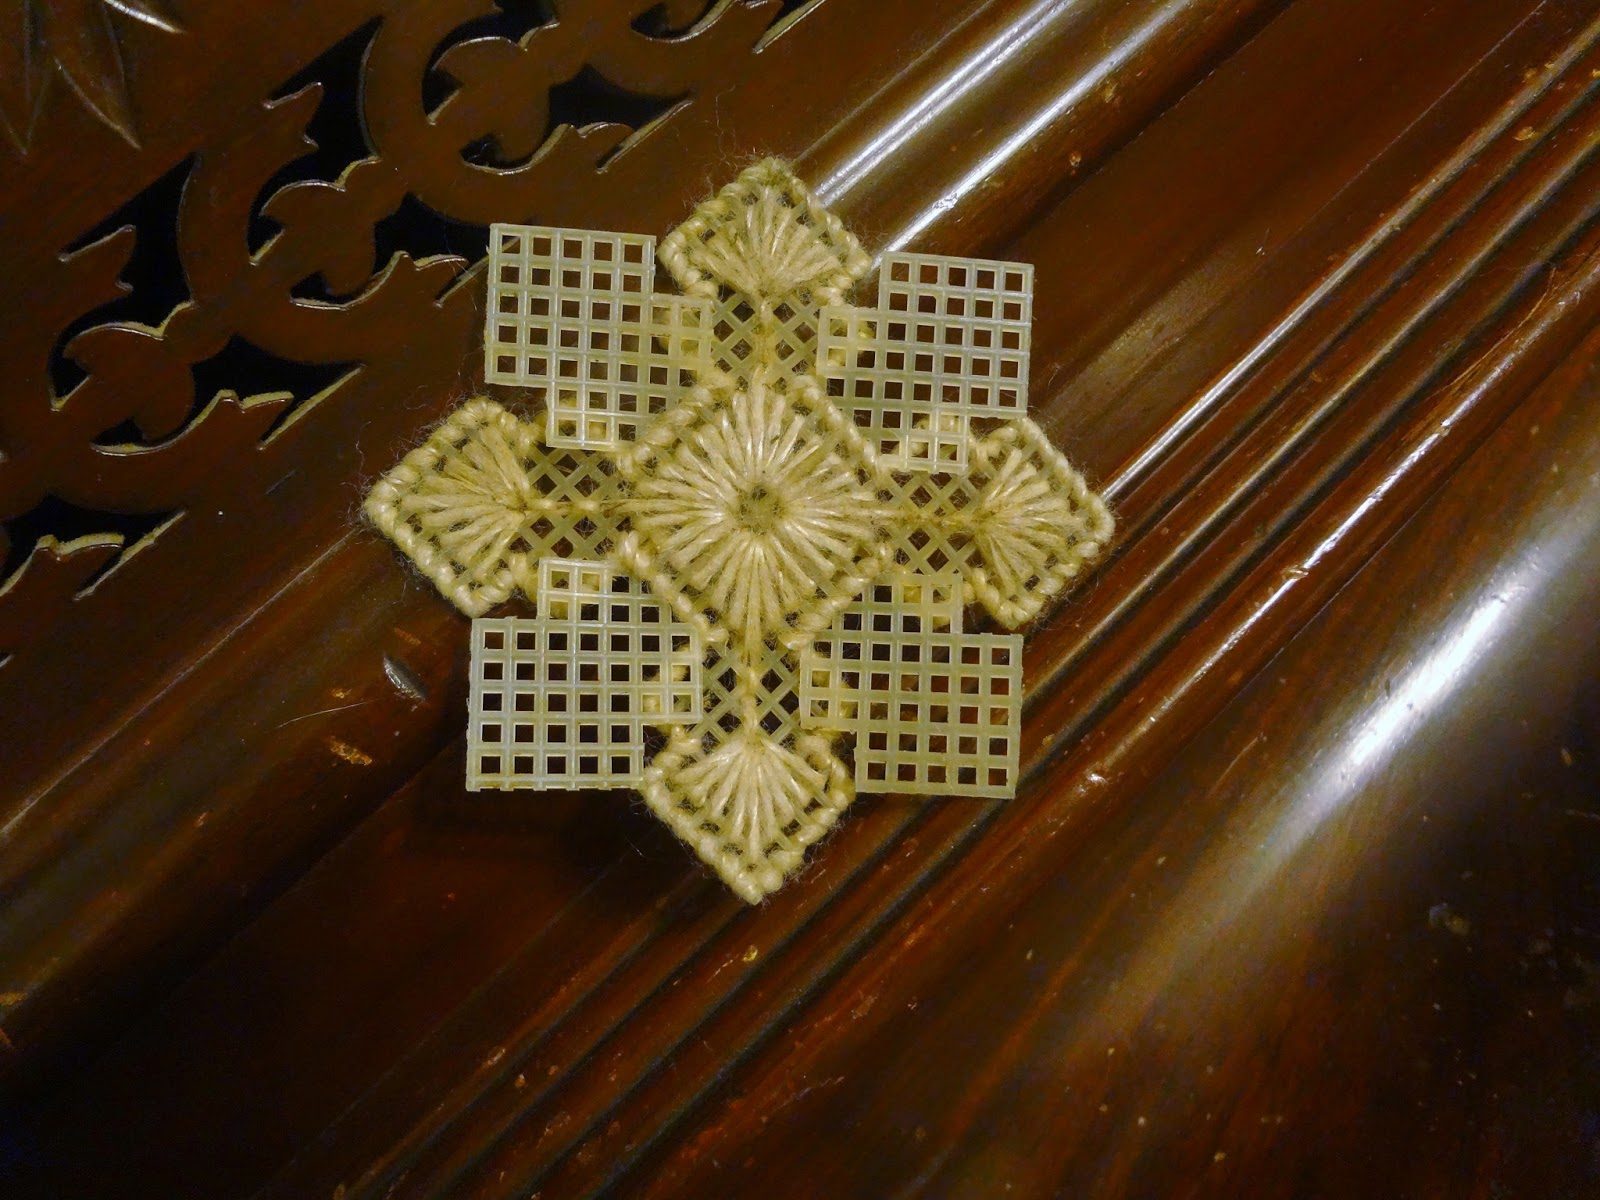 Needlepoint snowflake on a wooden background found in the debris of the 2013 Moore, Oklahoma tornado.